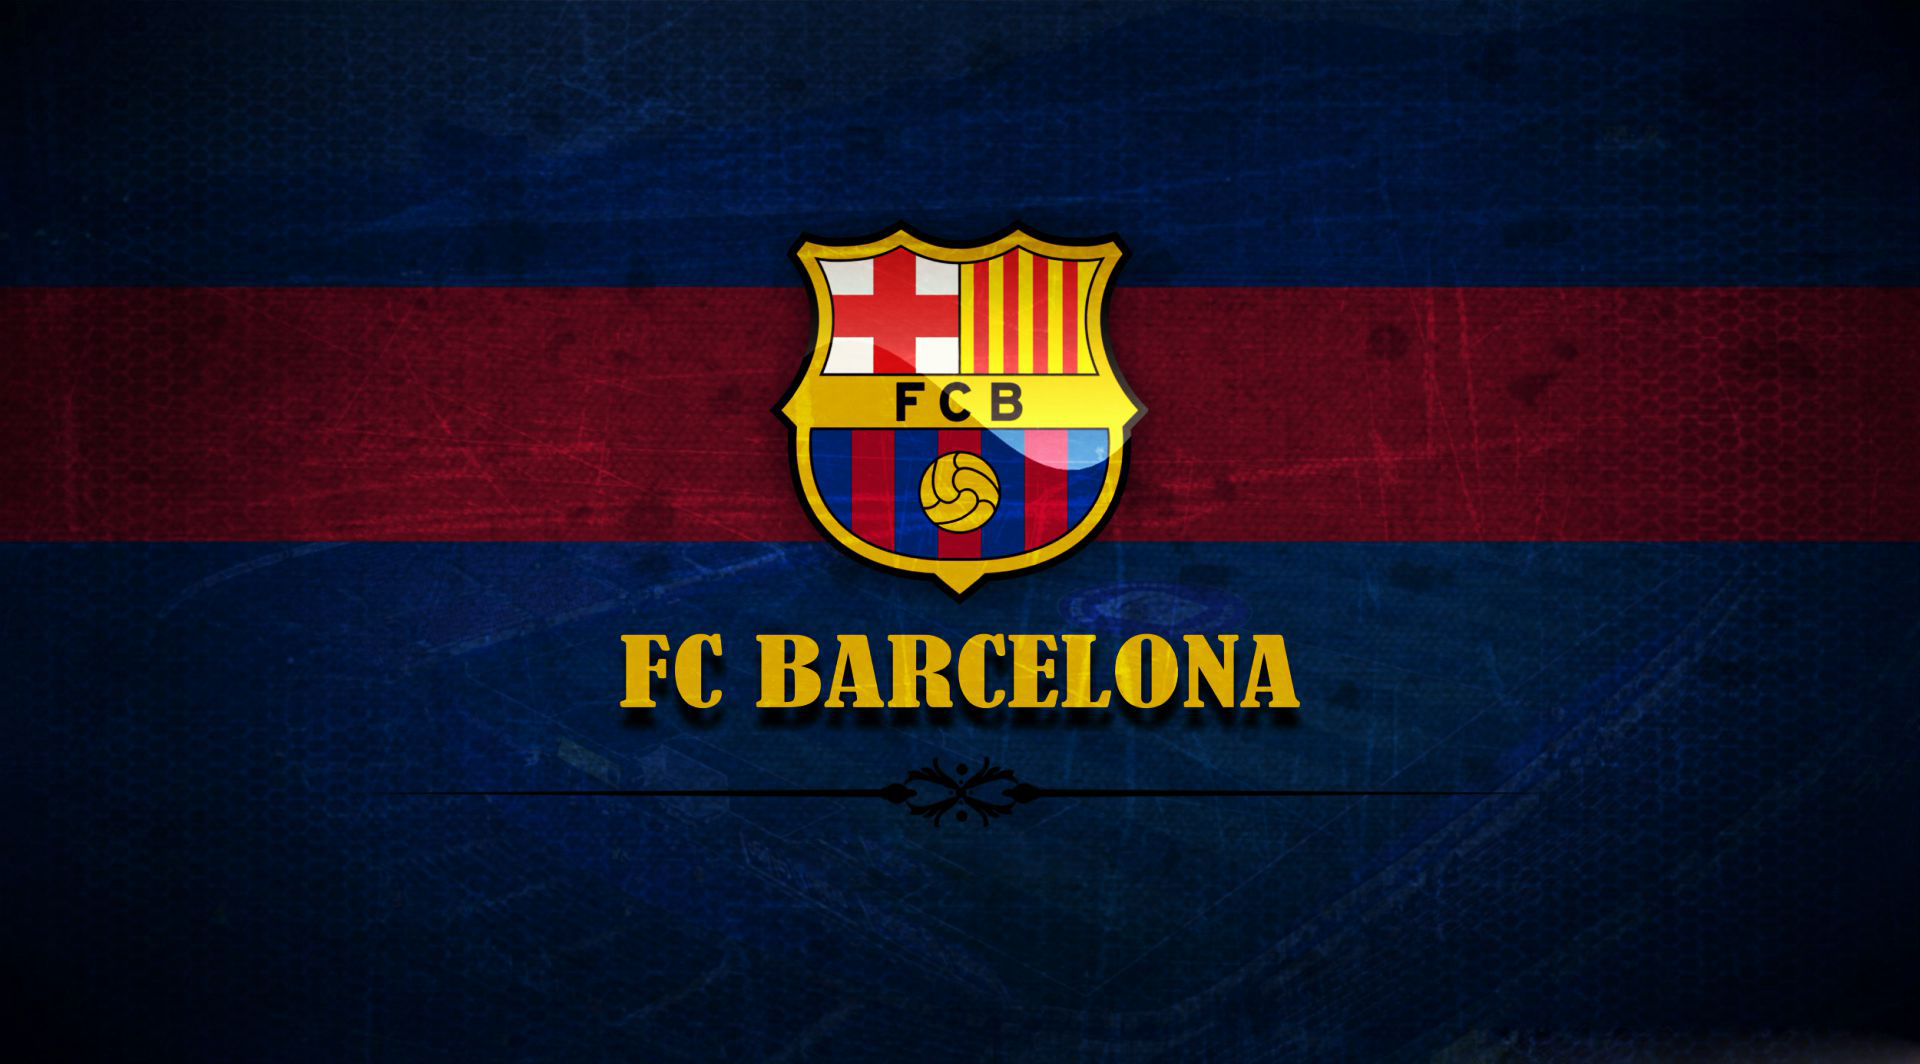 Fc Barcelona Desktop Wallpaper Hd Fc Barcelona Logo Wallpaper Download Pixelstalk Net